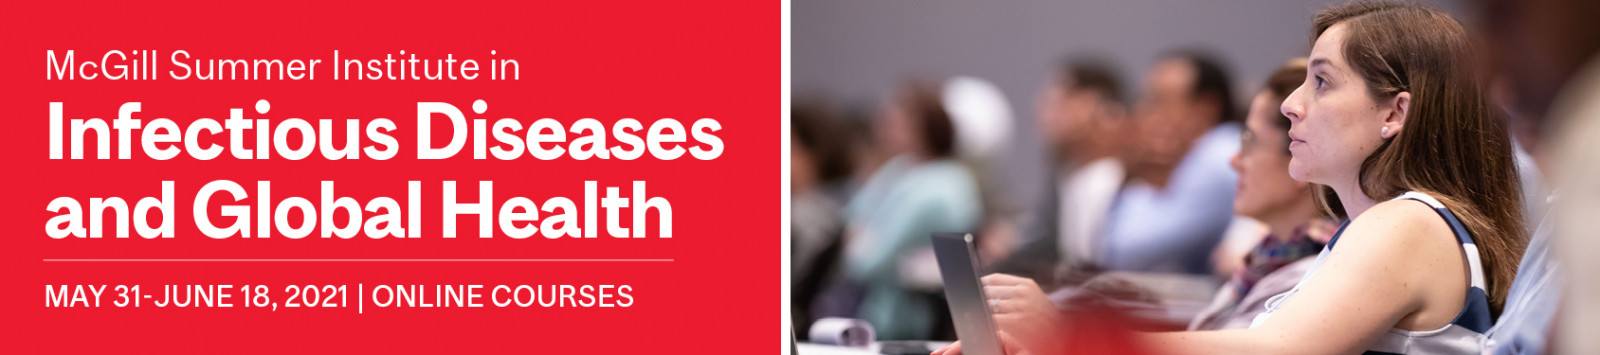 McGill Summer Institute in Infectious Diseases and Global Health Banner - May 31-June 18 | Online Courses